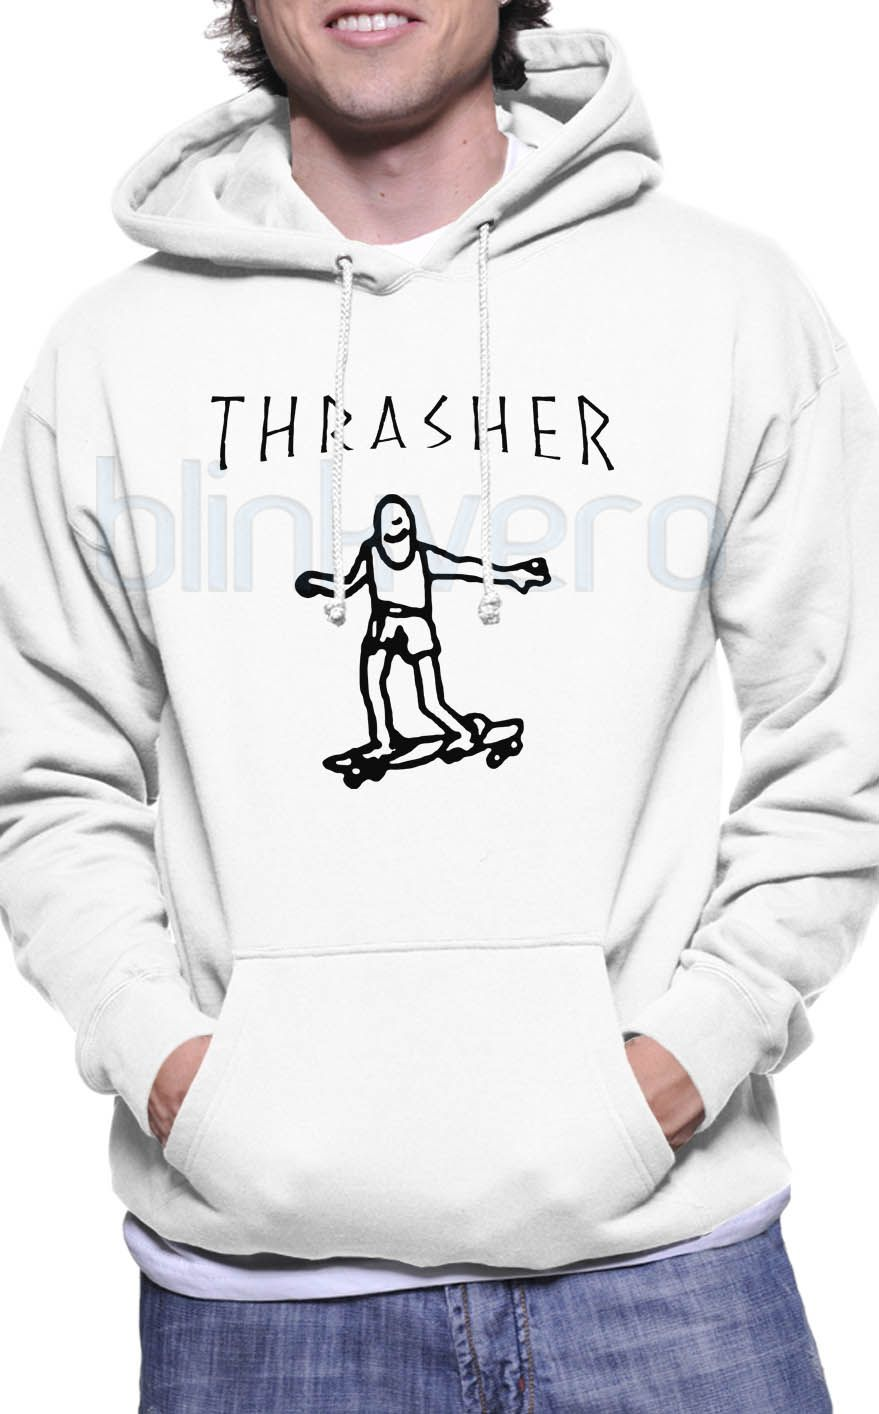 Thrasher sweater girls and mens hoodie adult | Unisex, Hoodie and ...